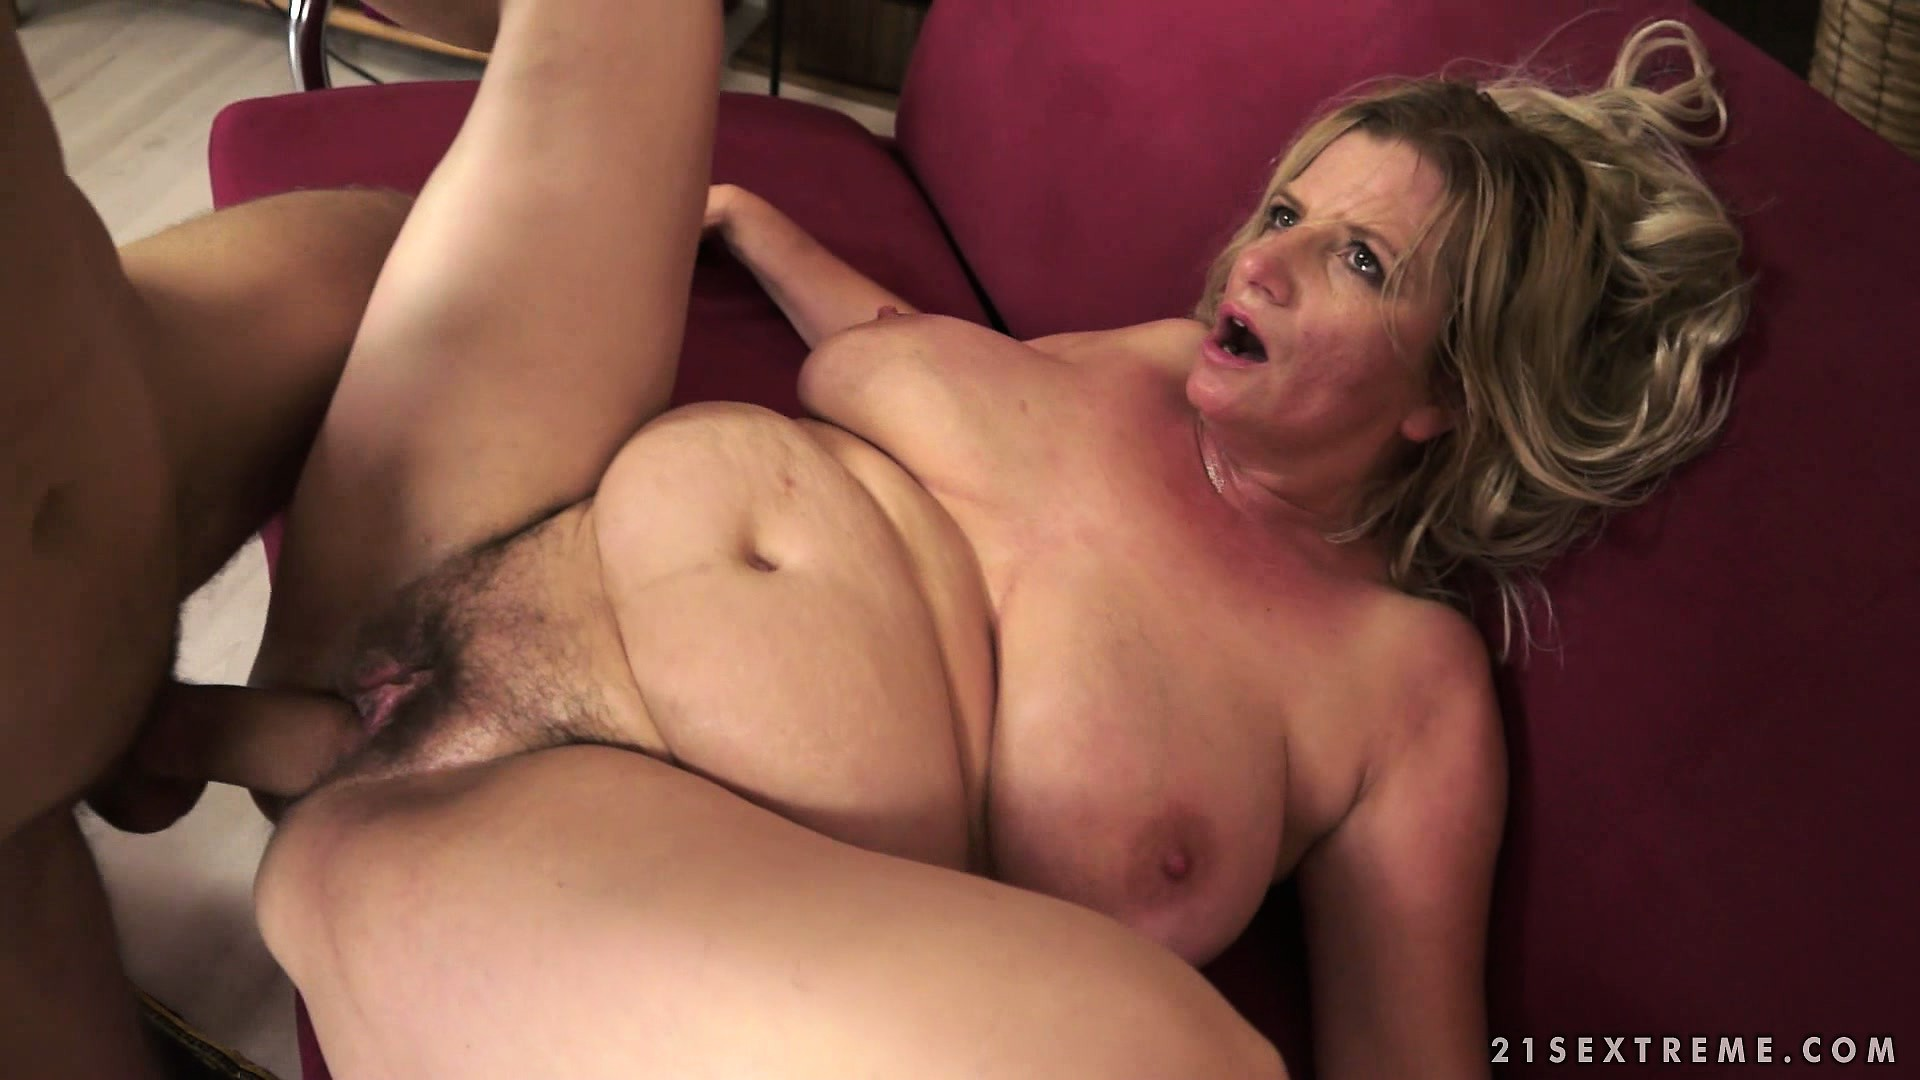 Milf amature creampie